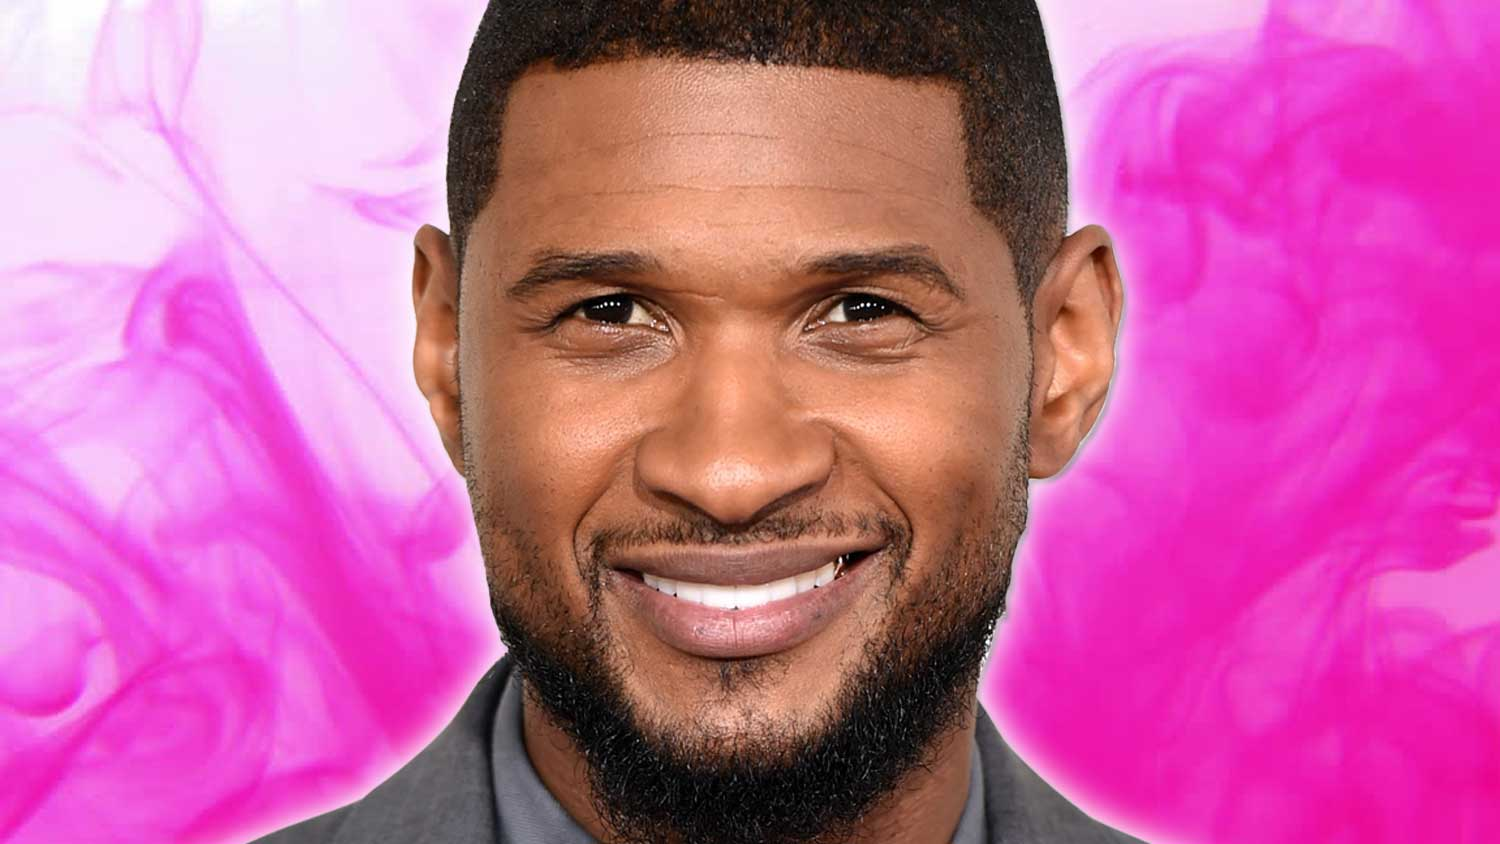 Usher Says These Vegan Burgers Make Him Feel Frisky